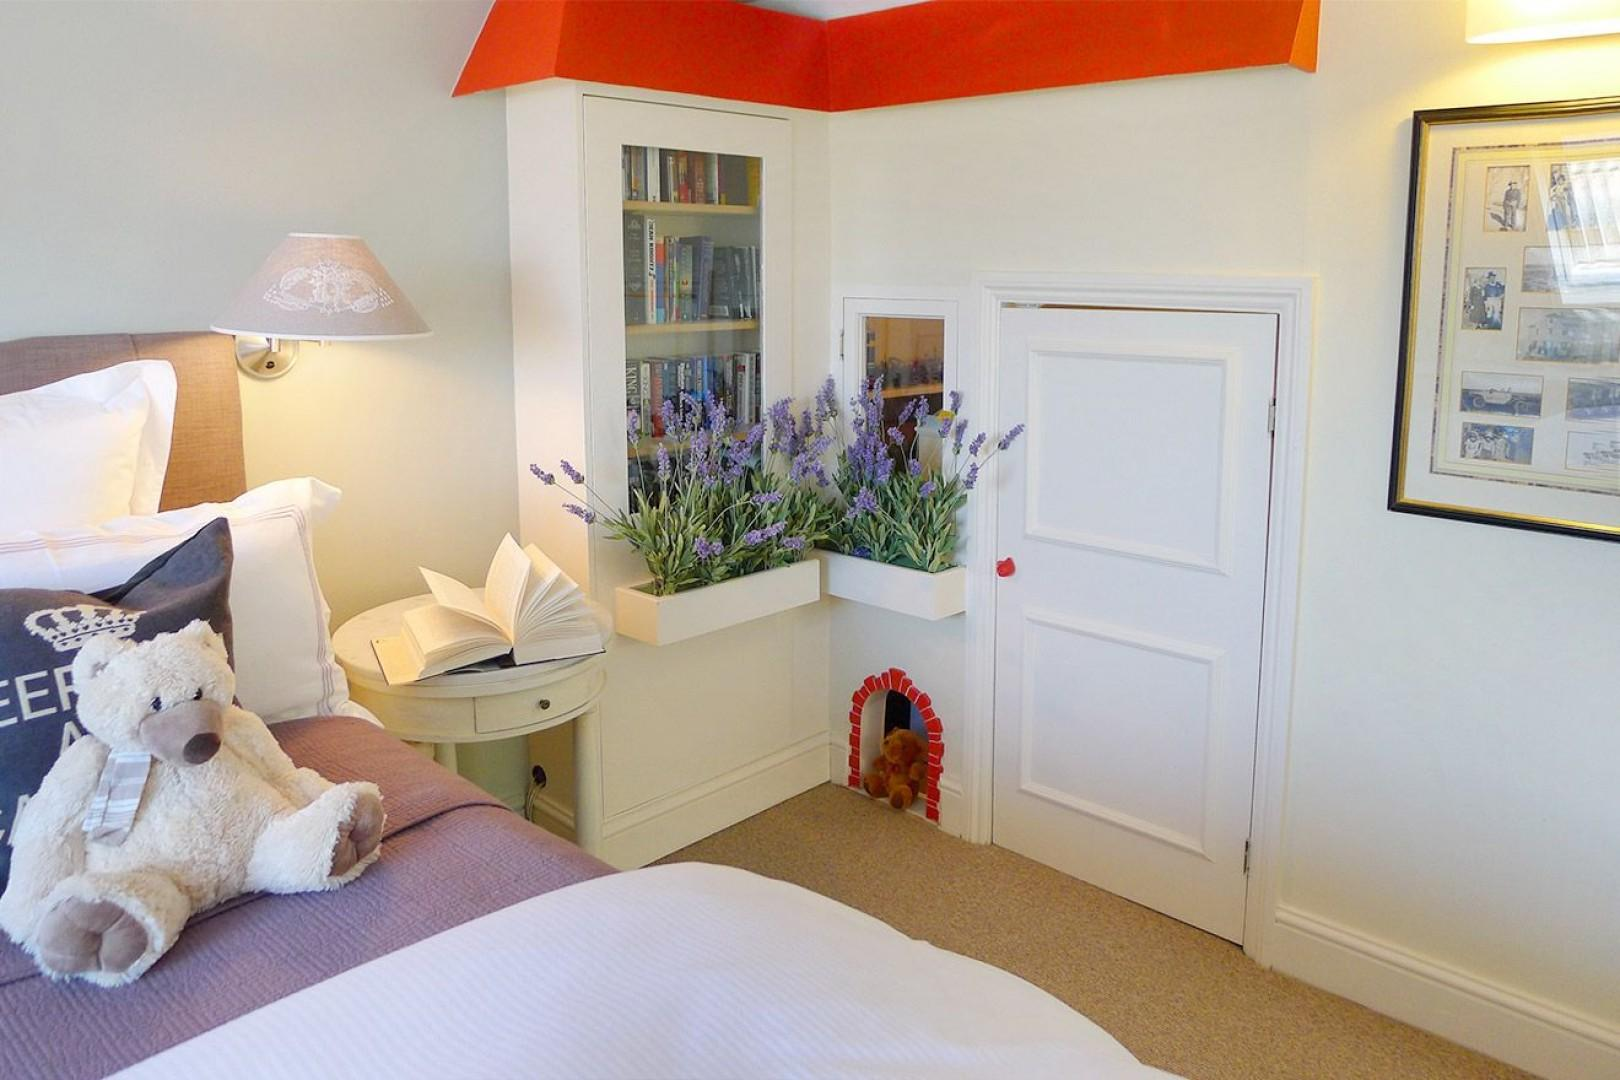 Lovely play area in the third bedroom